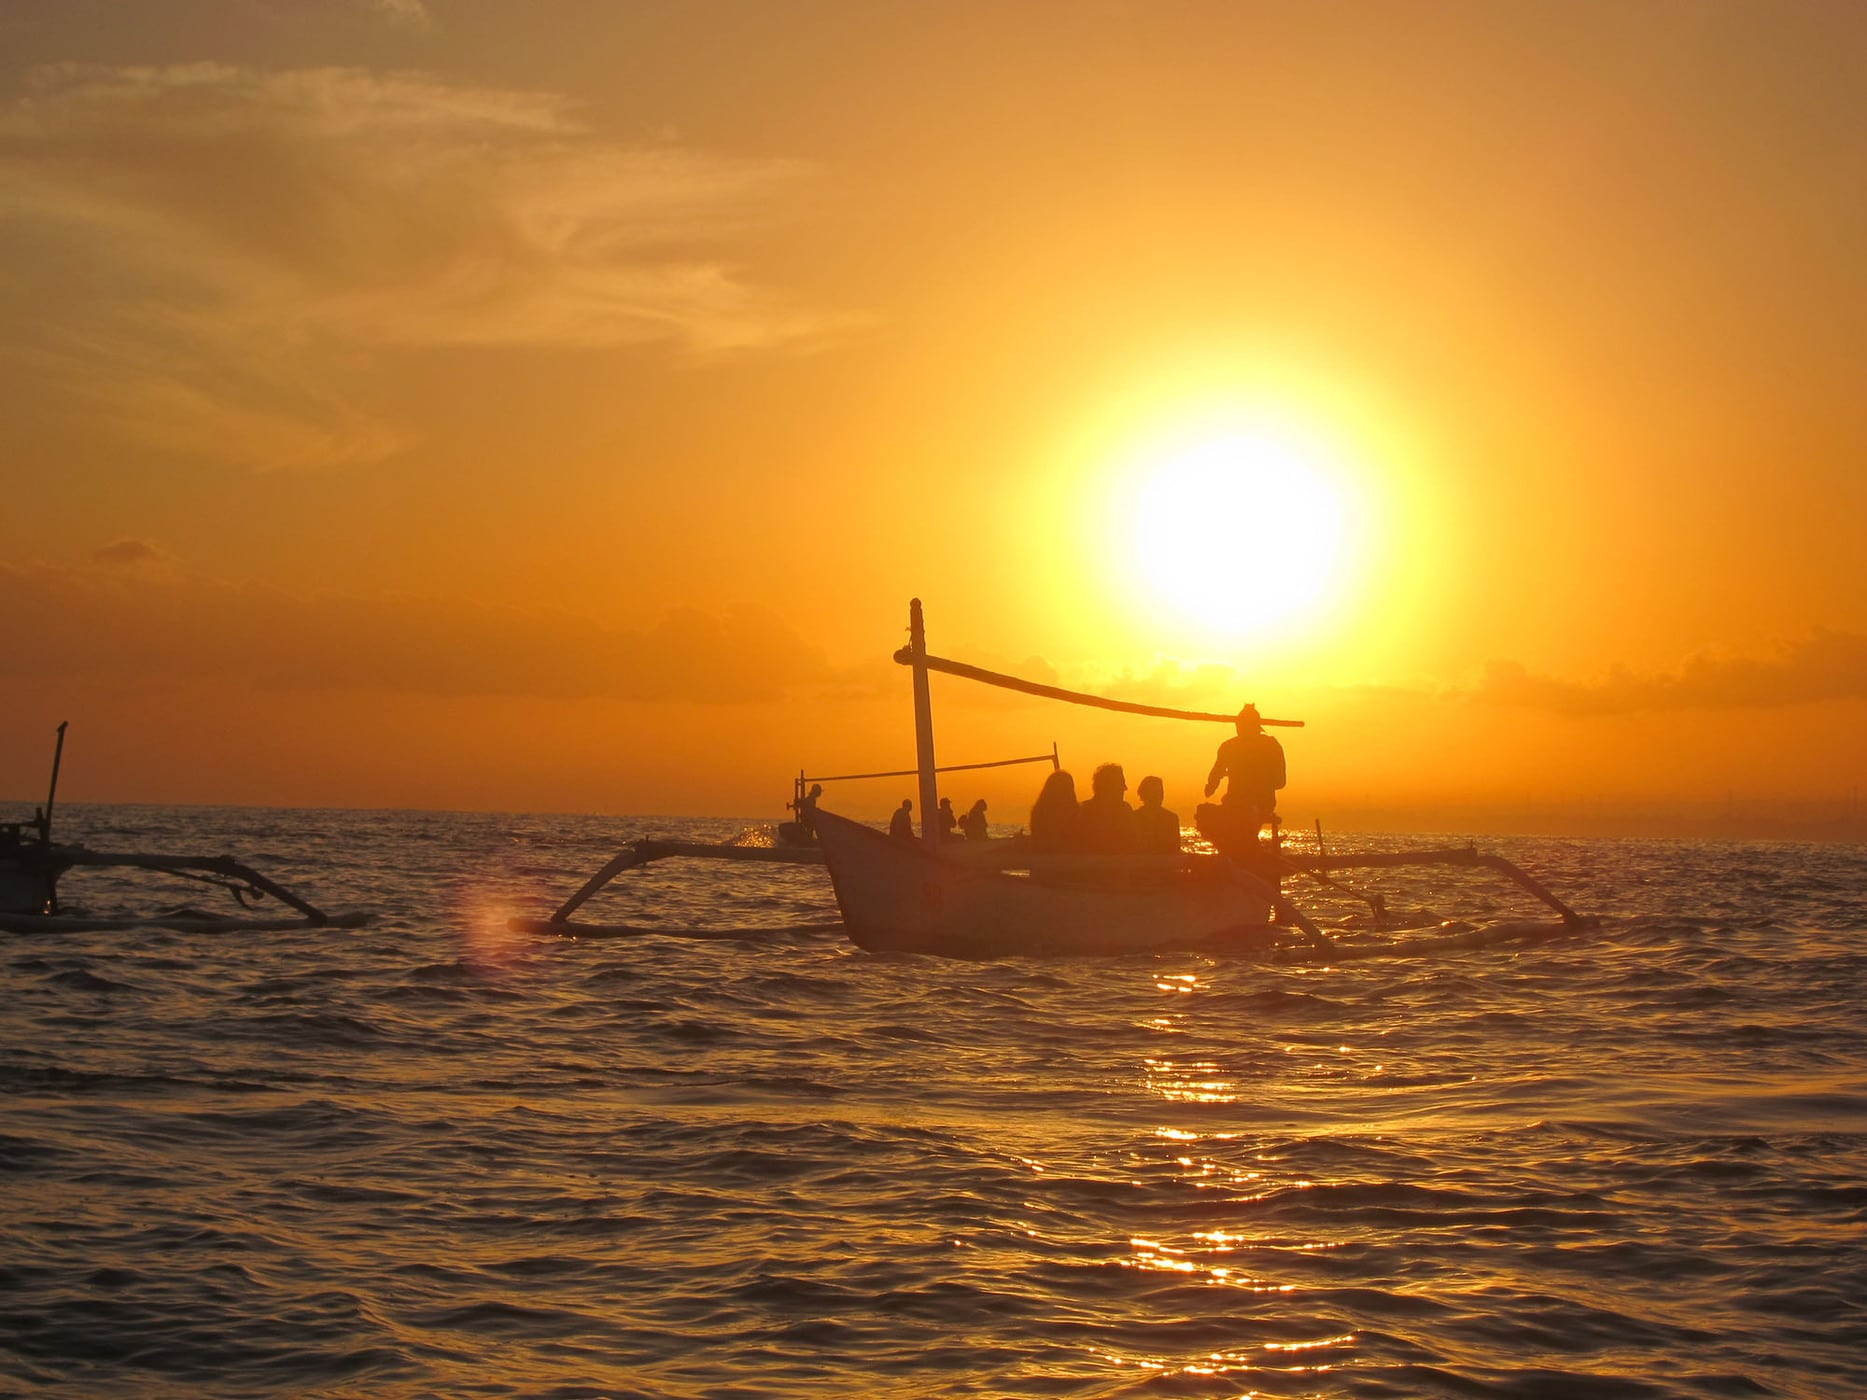 Sunrise dolphin watching in Lovina, Bali.